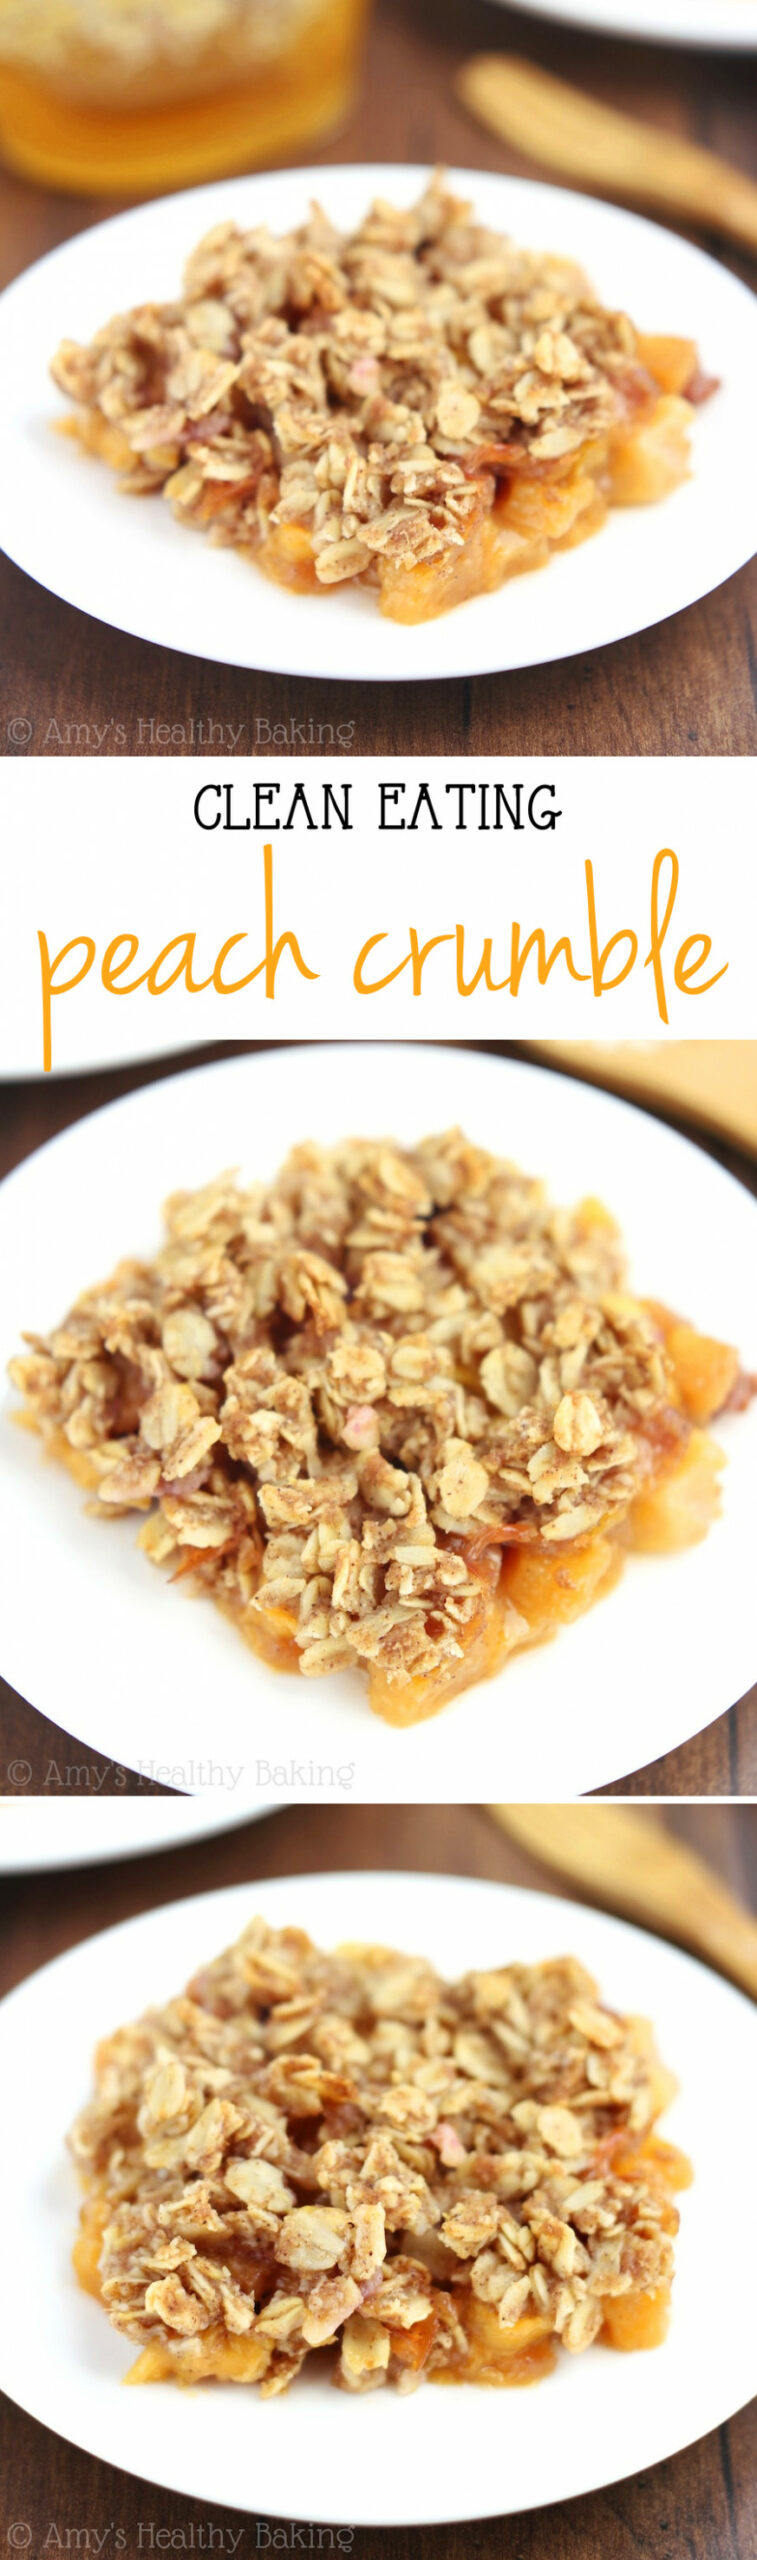 Healthy Peach Crumble - Recipes To Eat Healthy